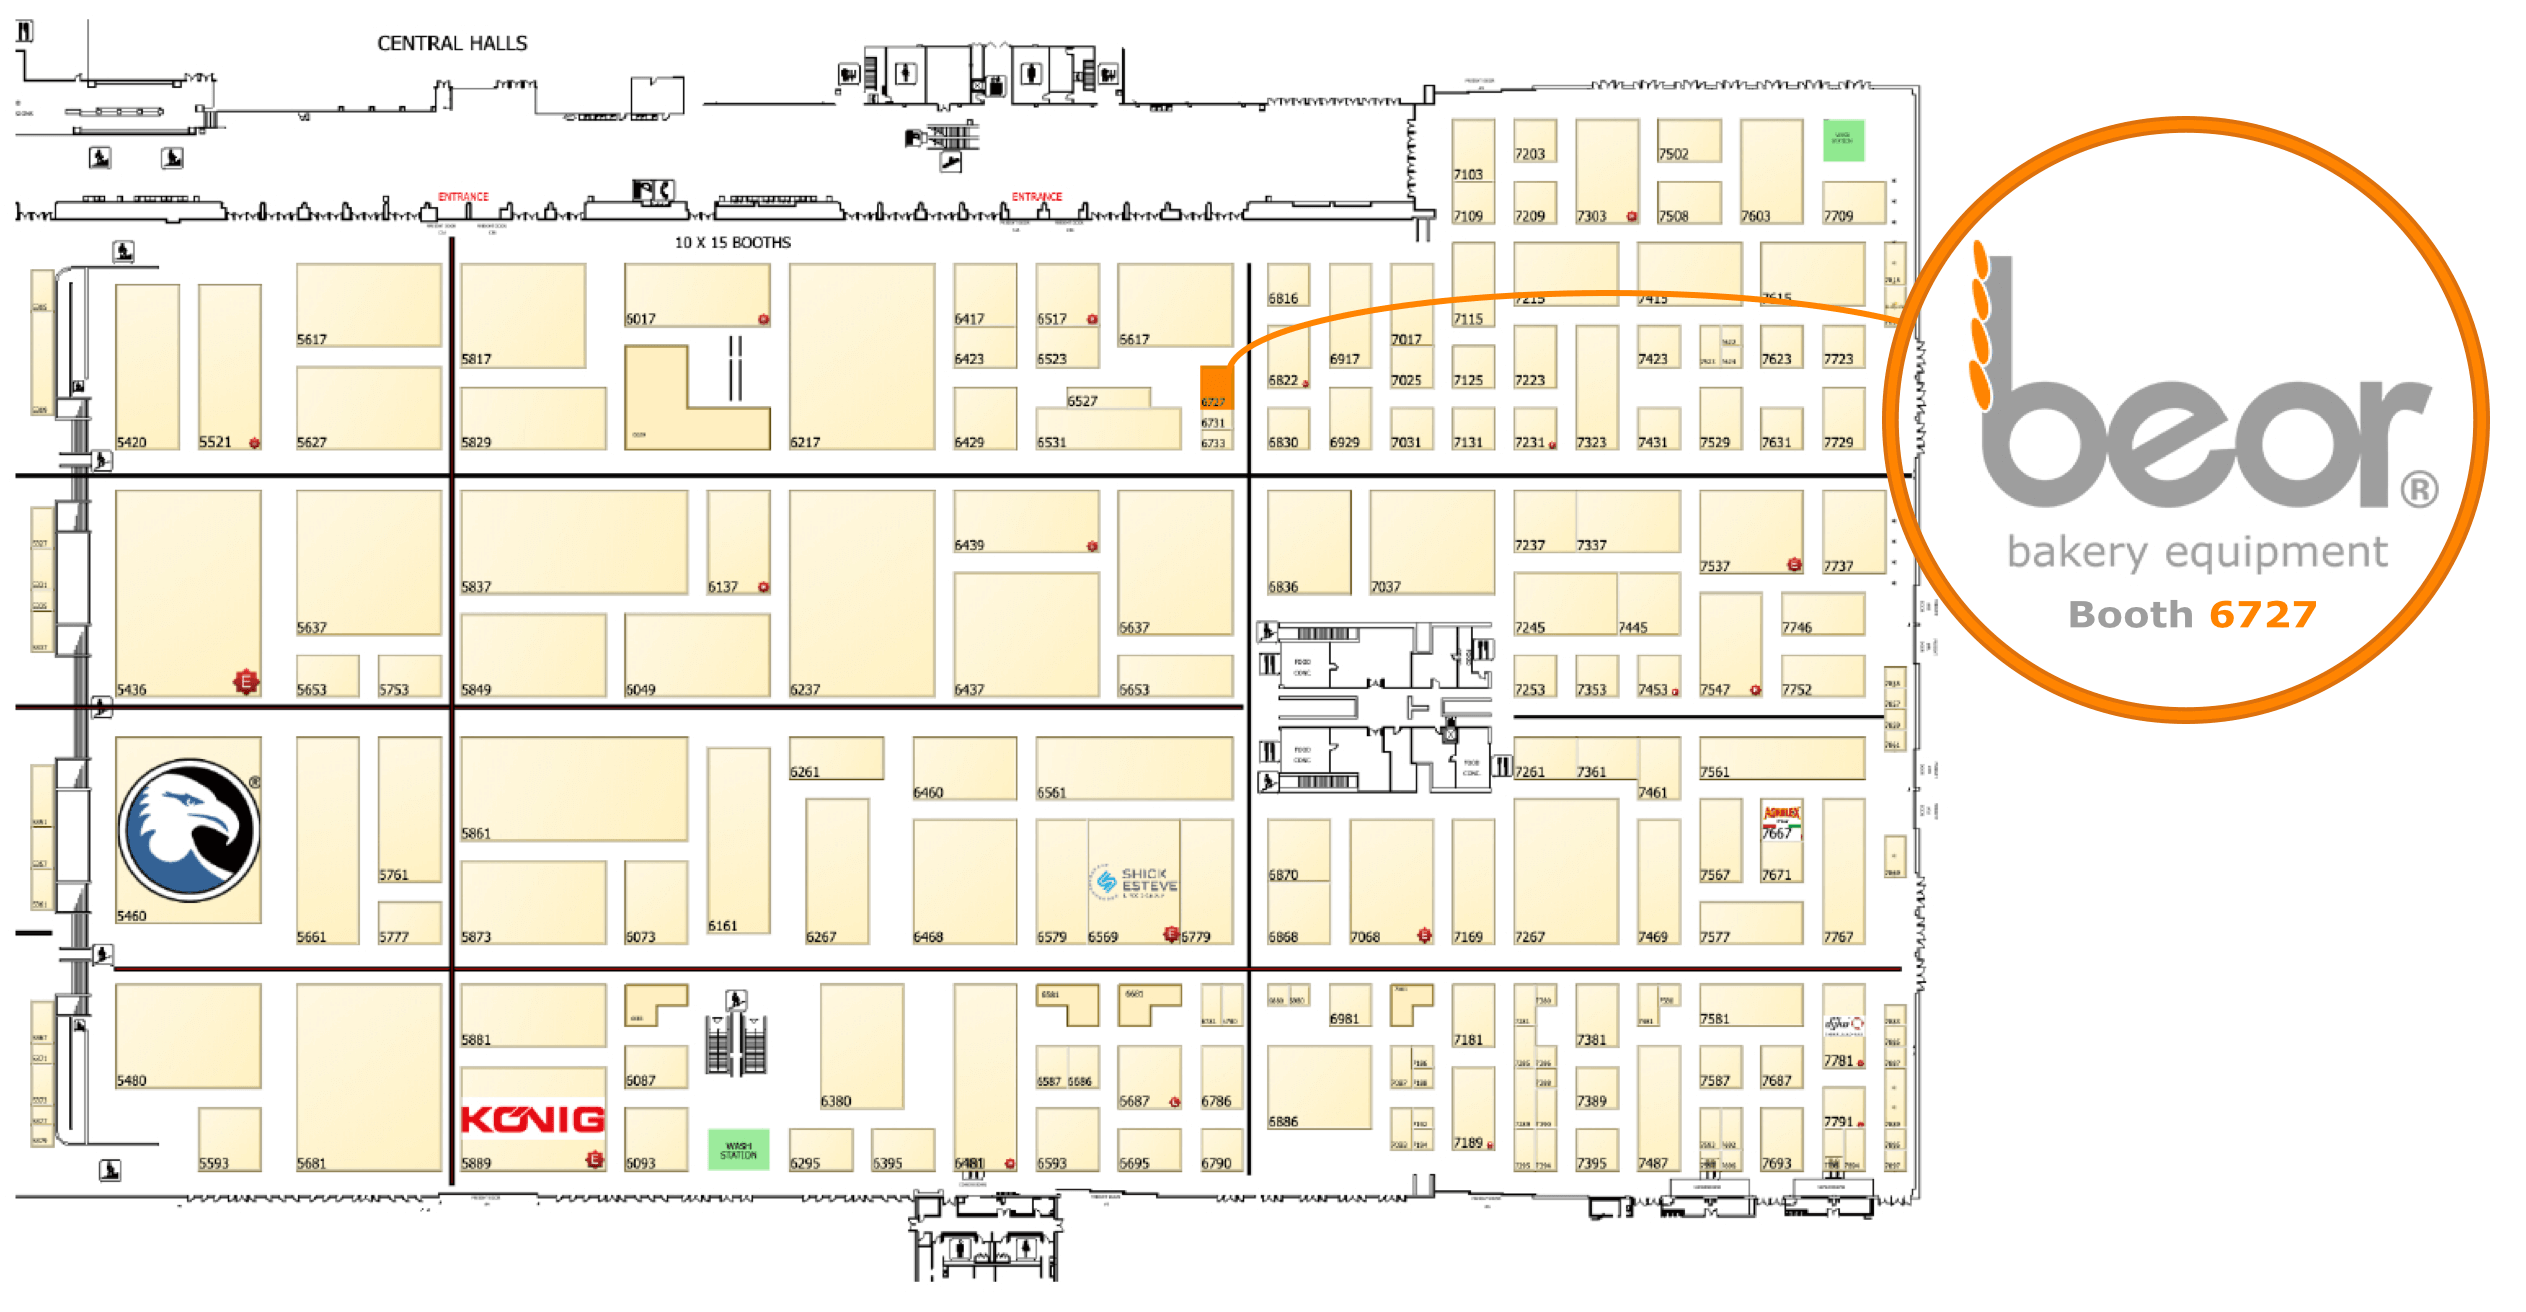 IBIE 2019. Booth 6727